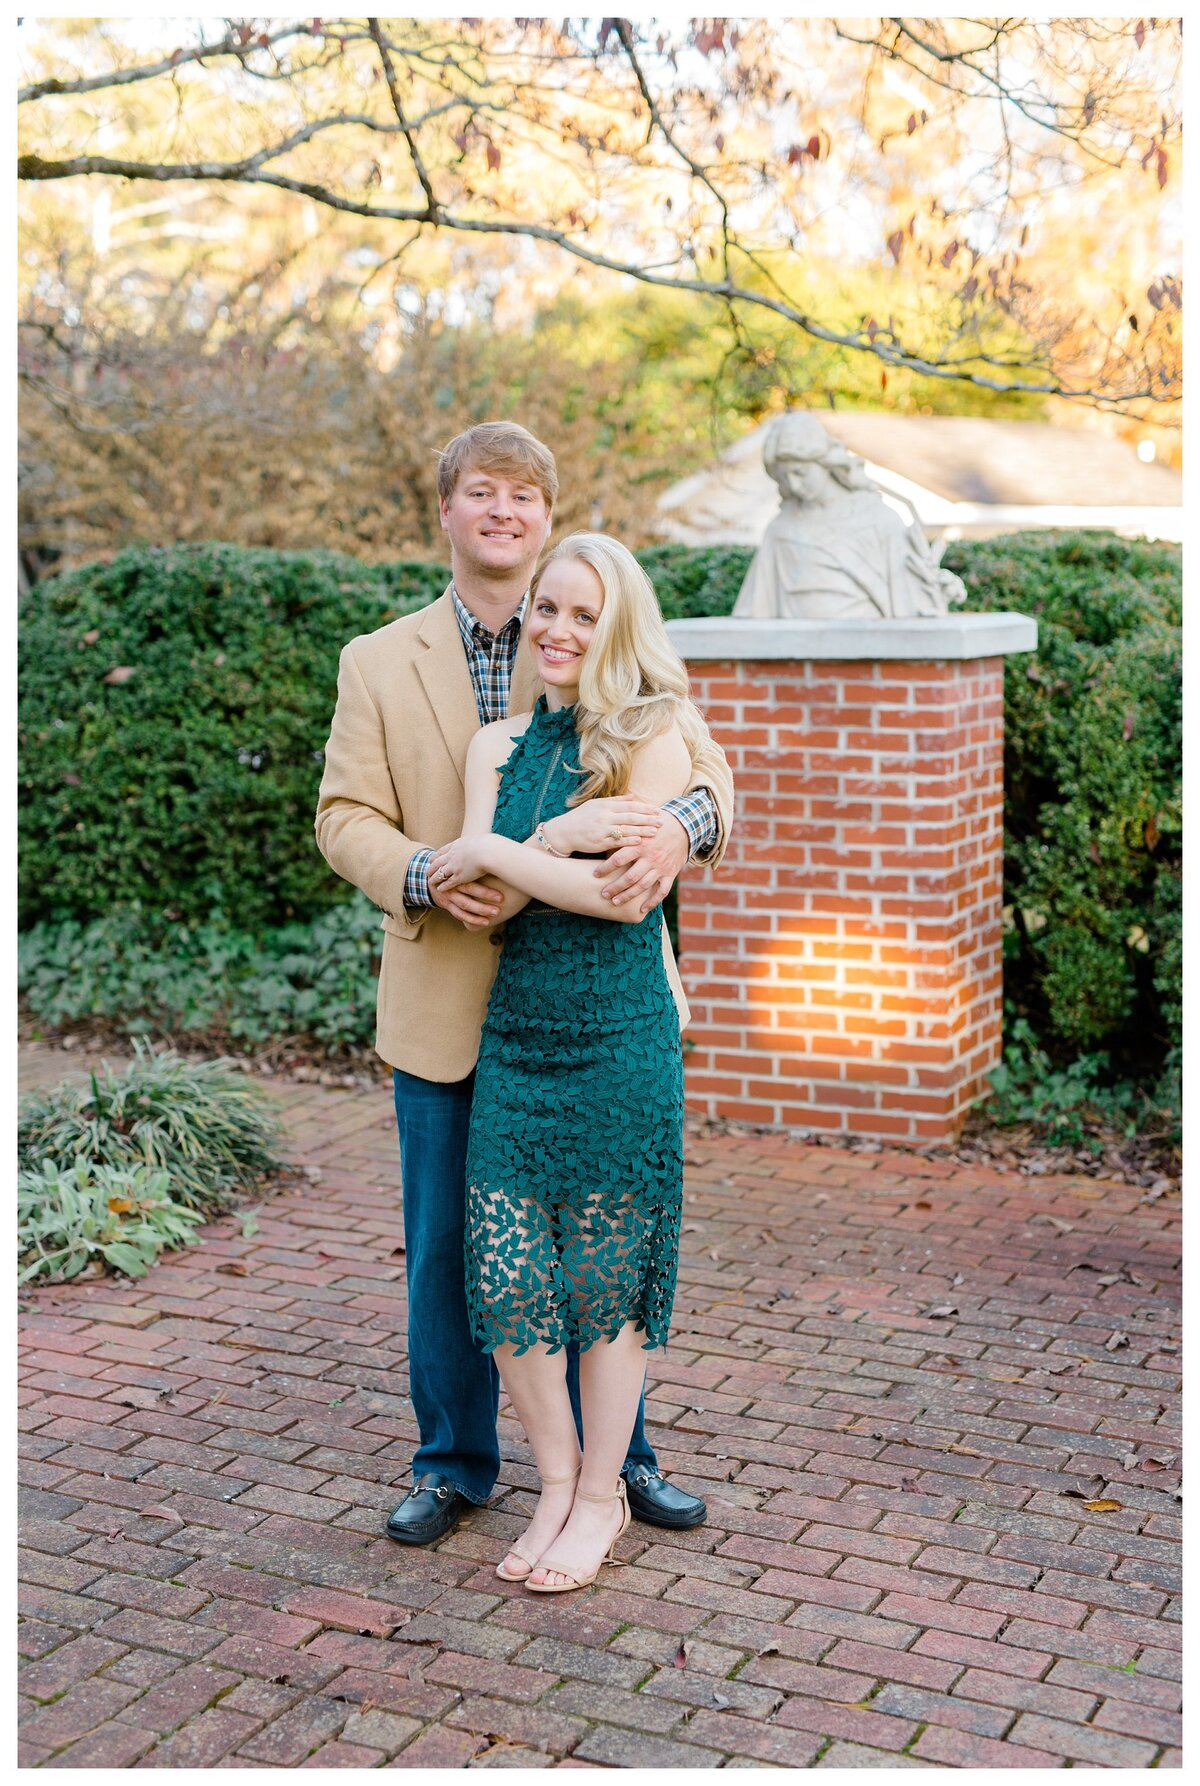 canady-engagements-atlanta-wedding-photographer-24